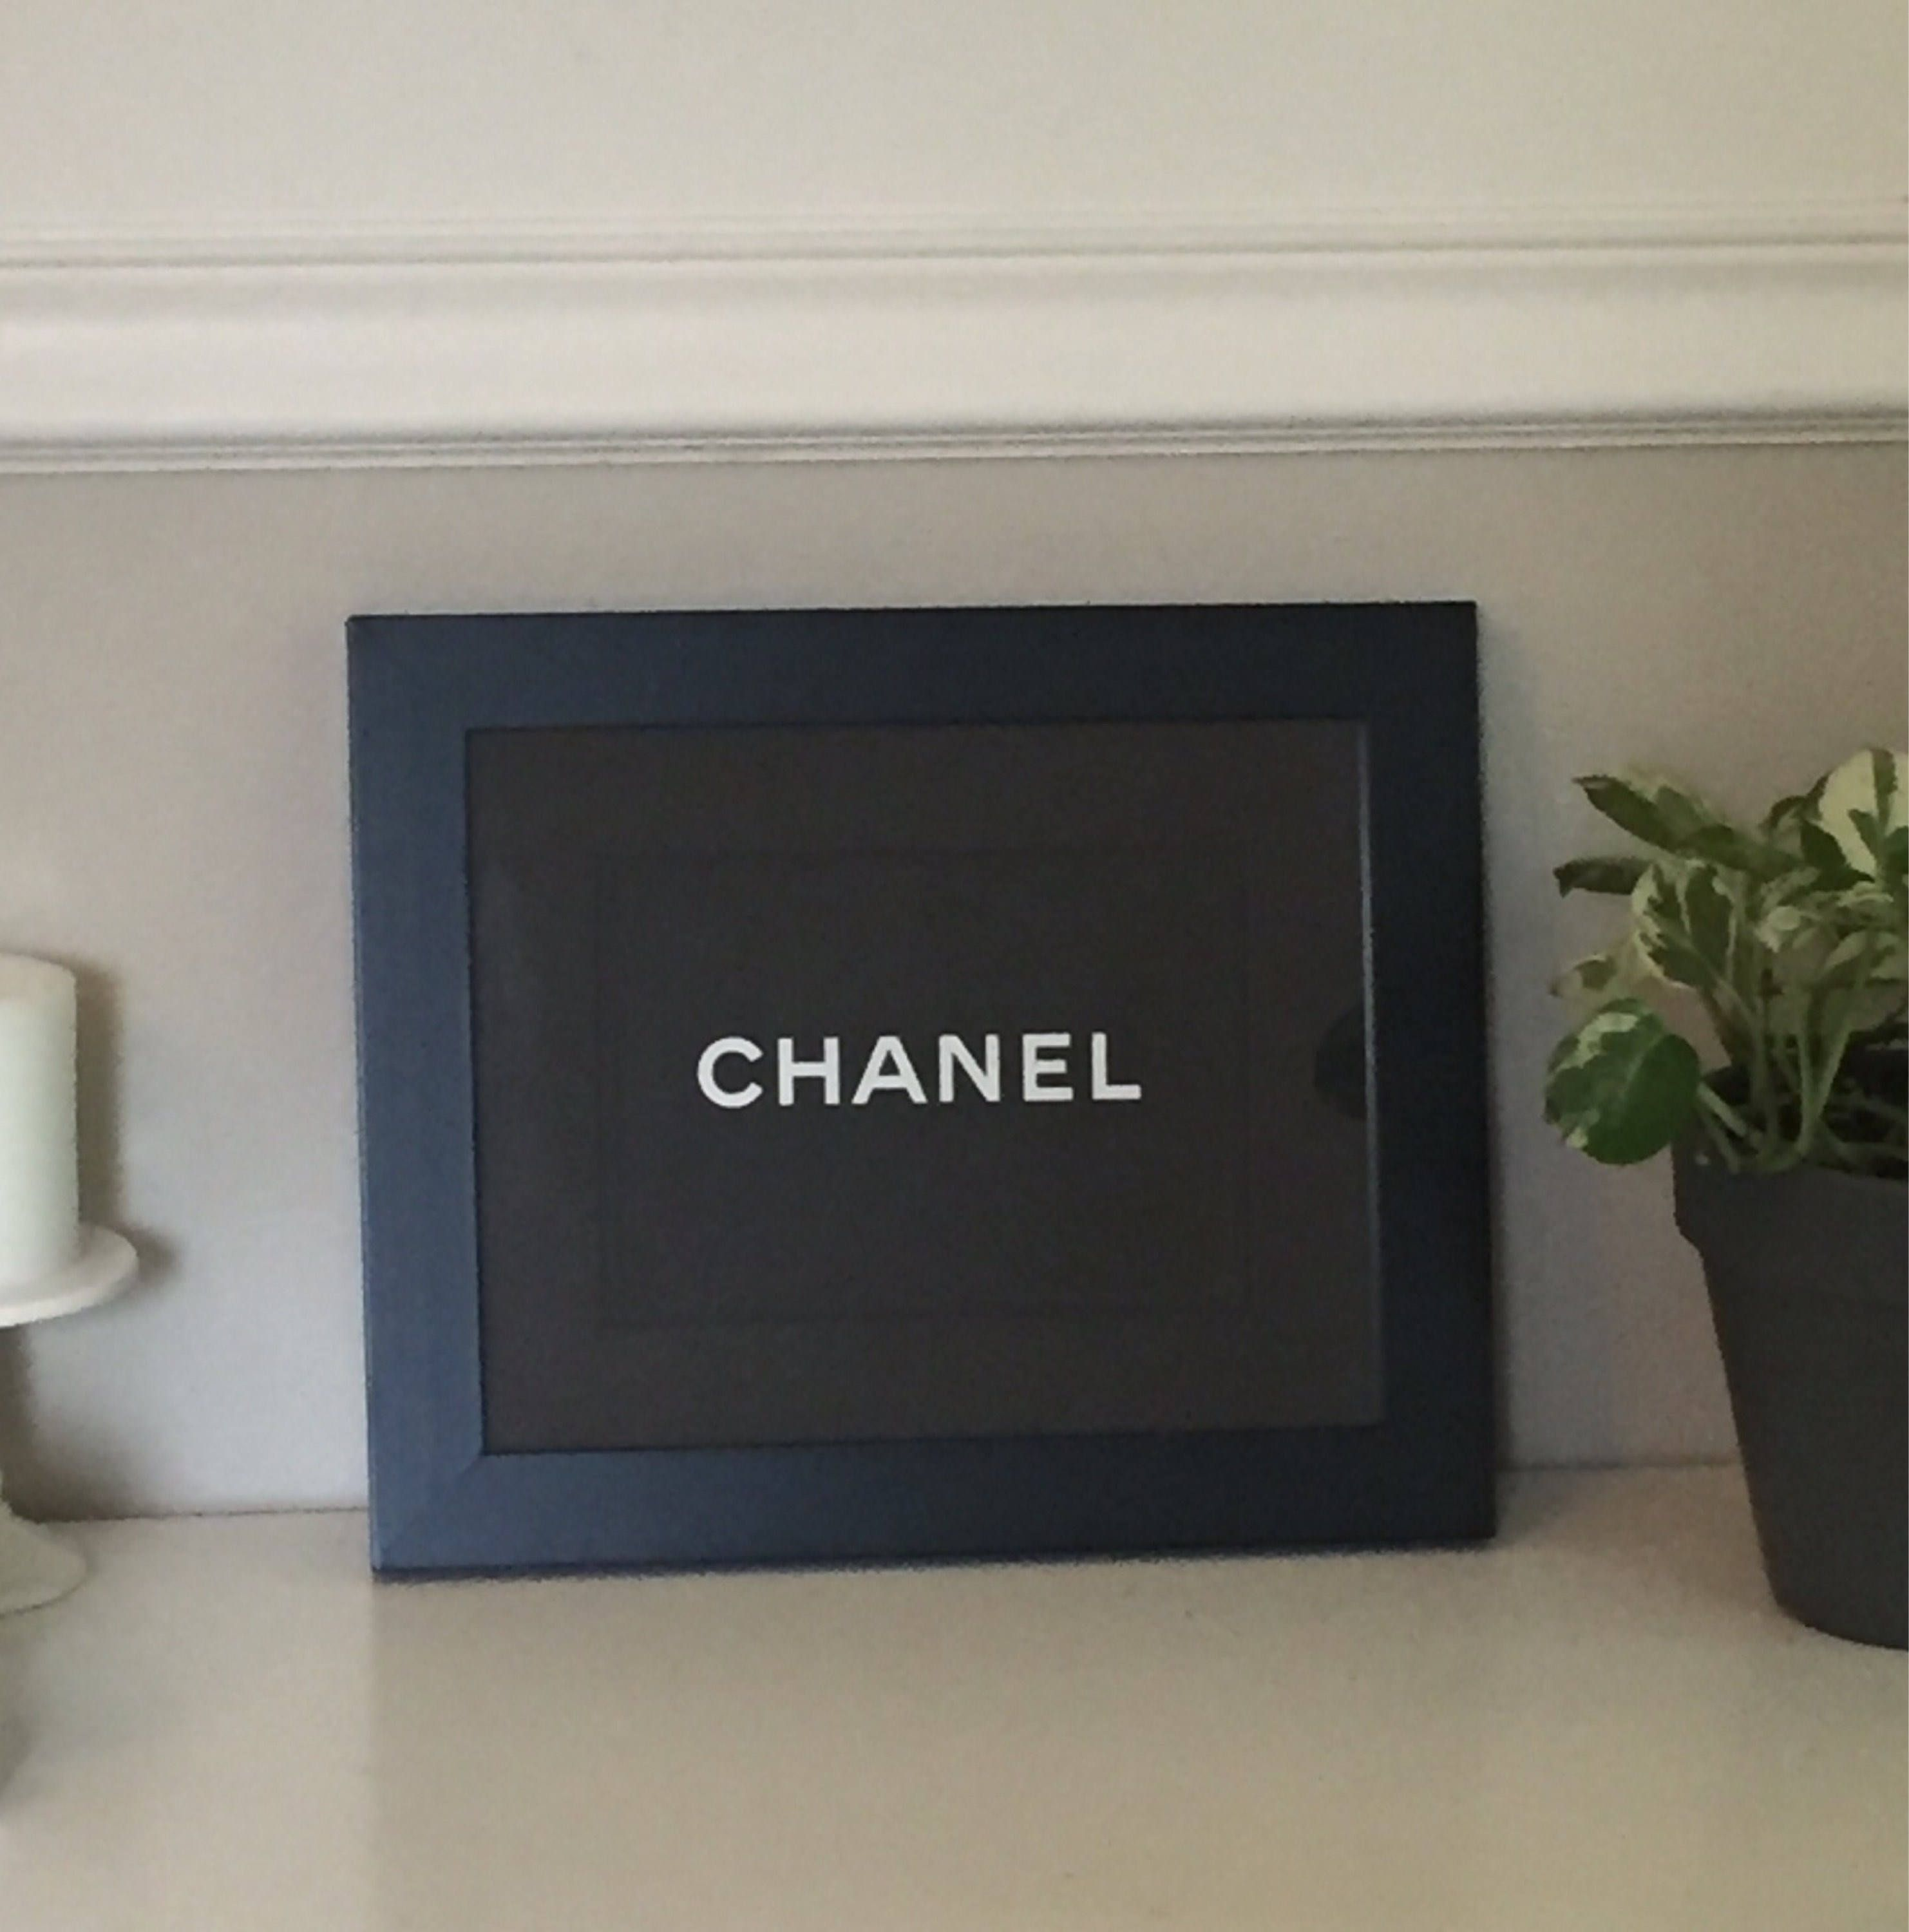 Framed chanel x authentic black chanel shopping bag with double